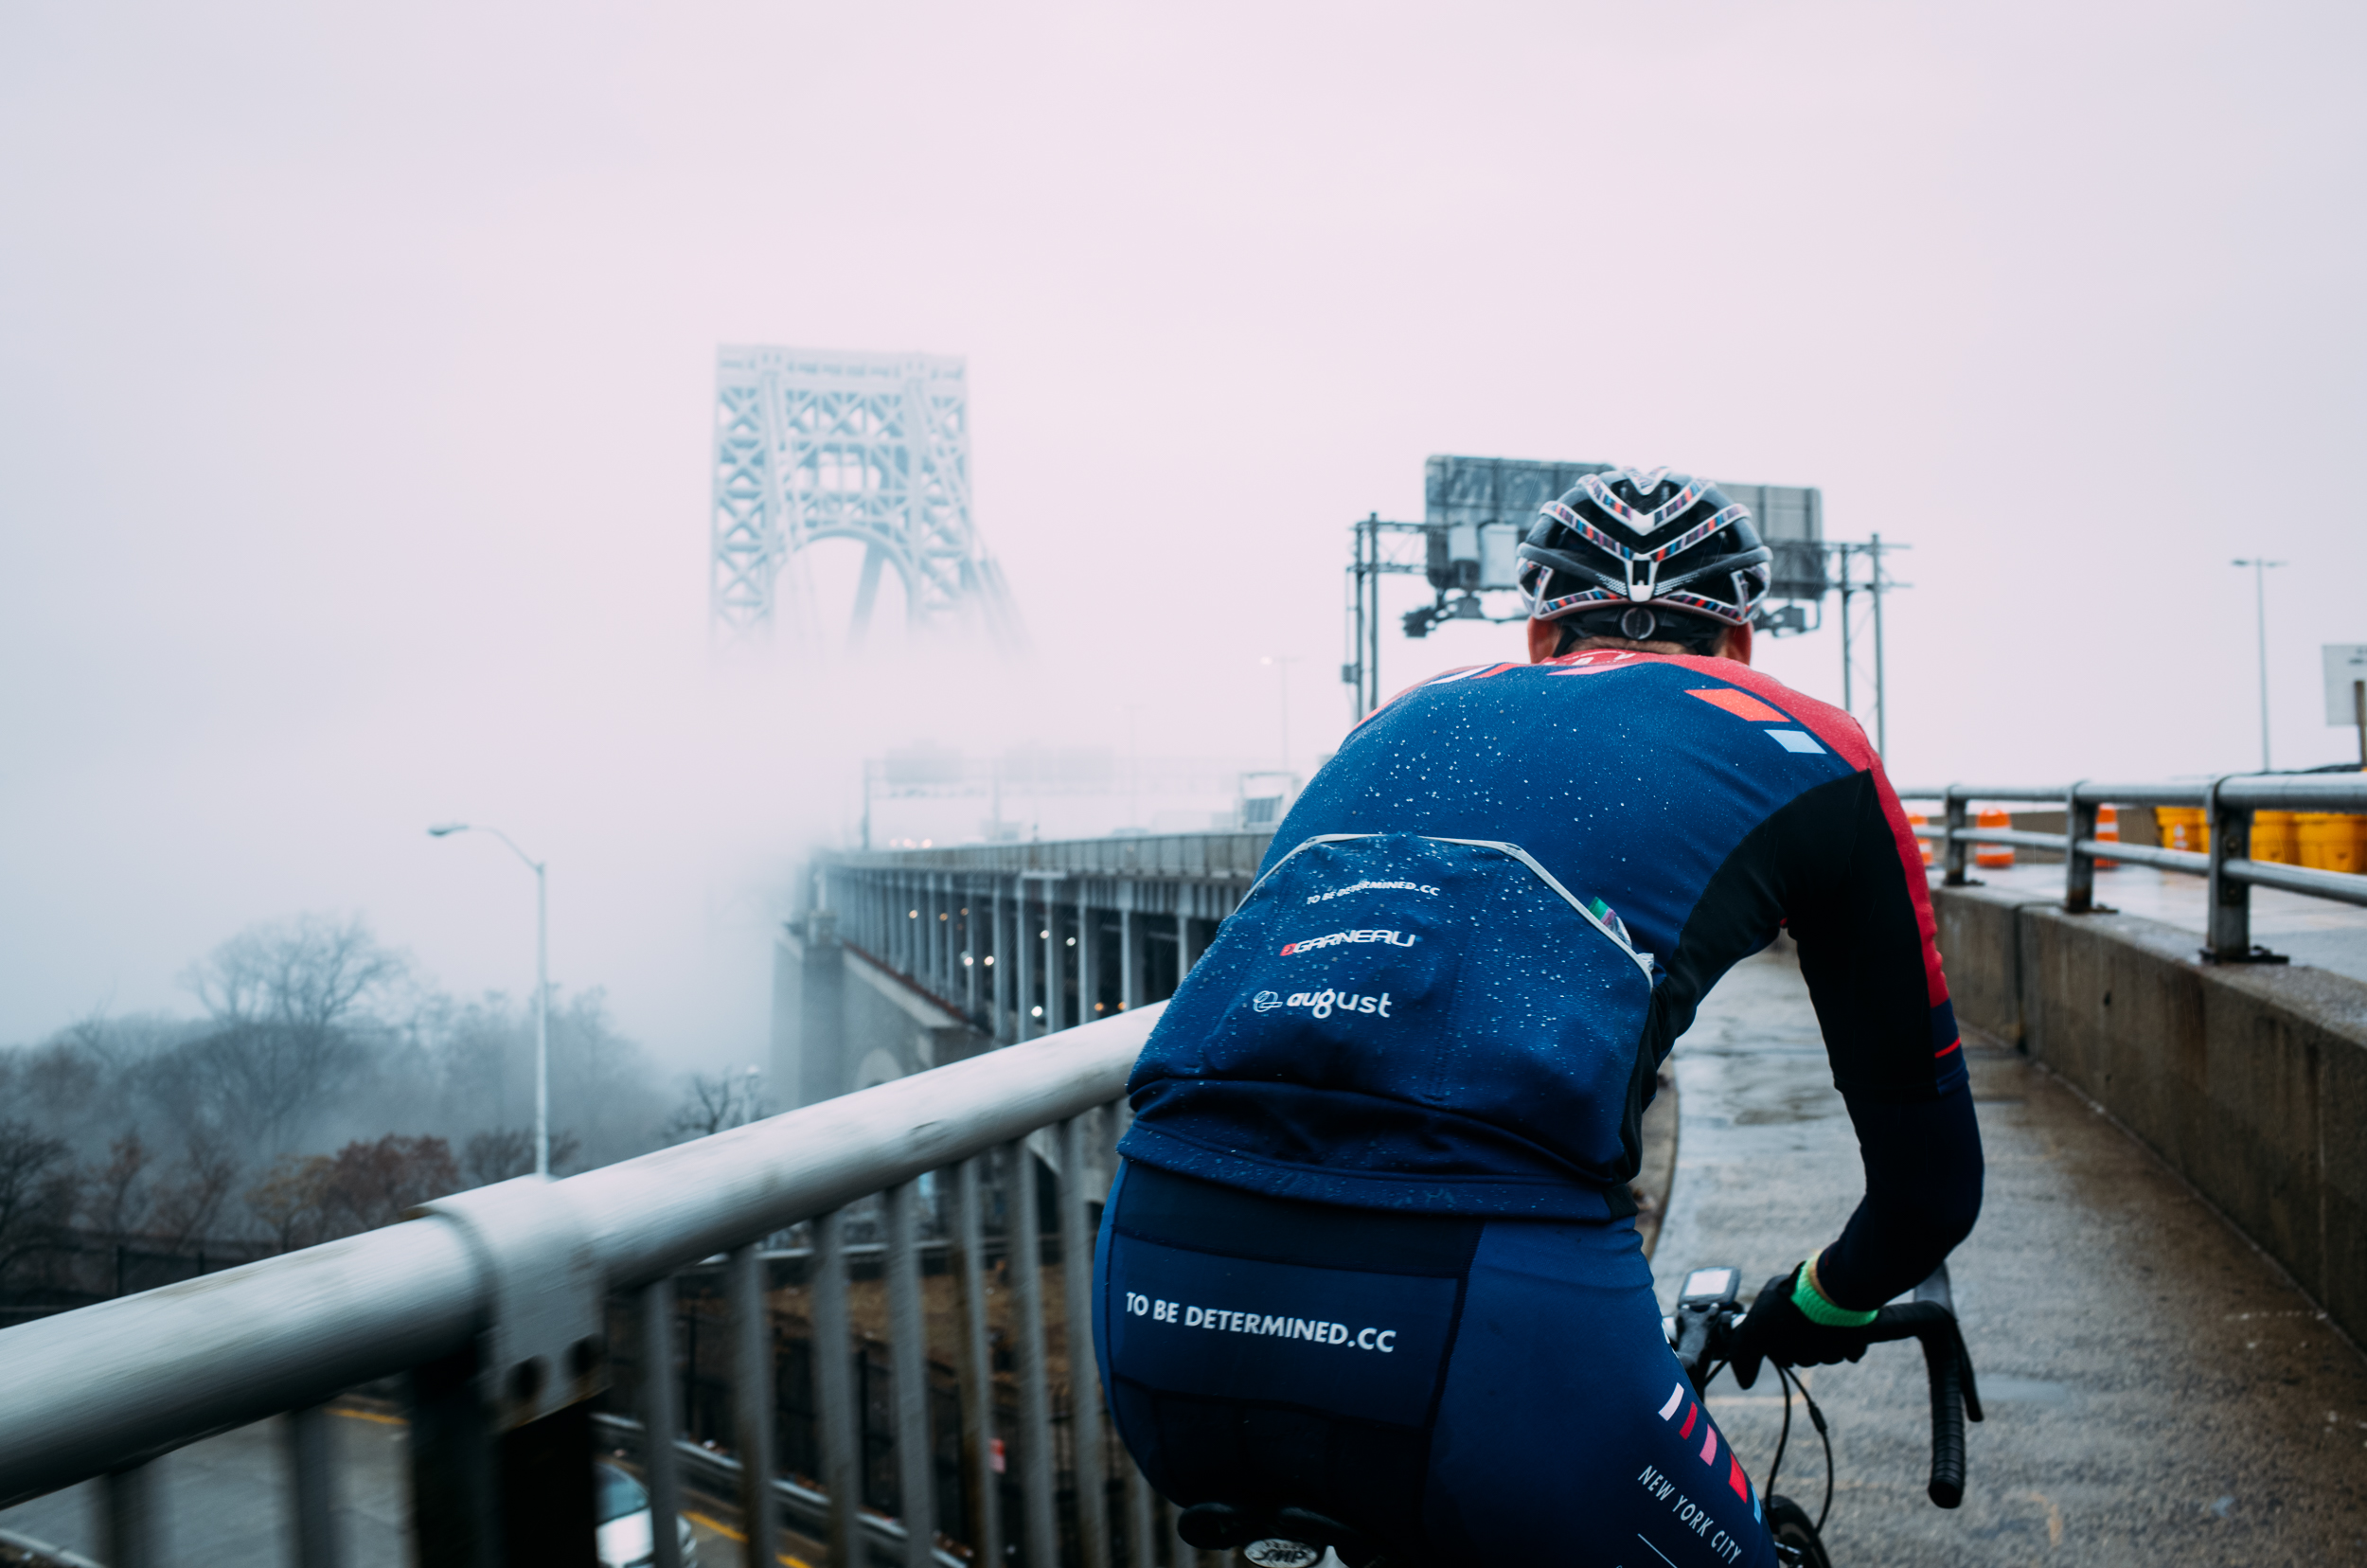 Photo excerpted from  Winter Weather and Foggy Miles in New York City